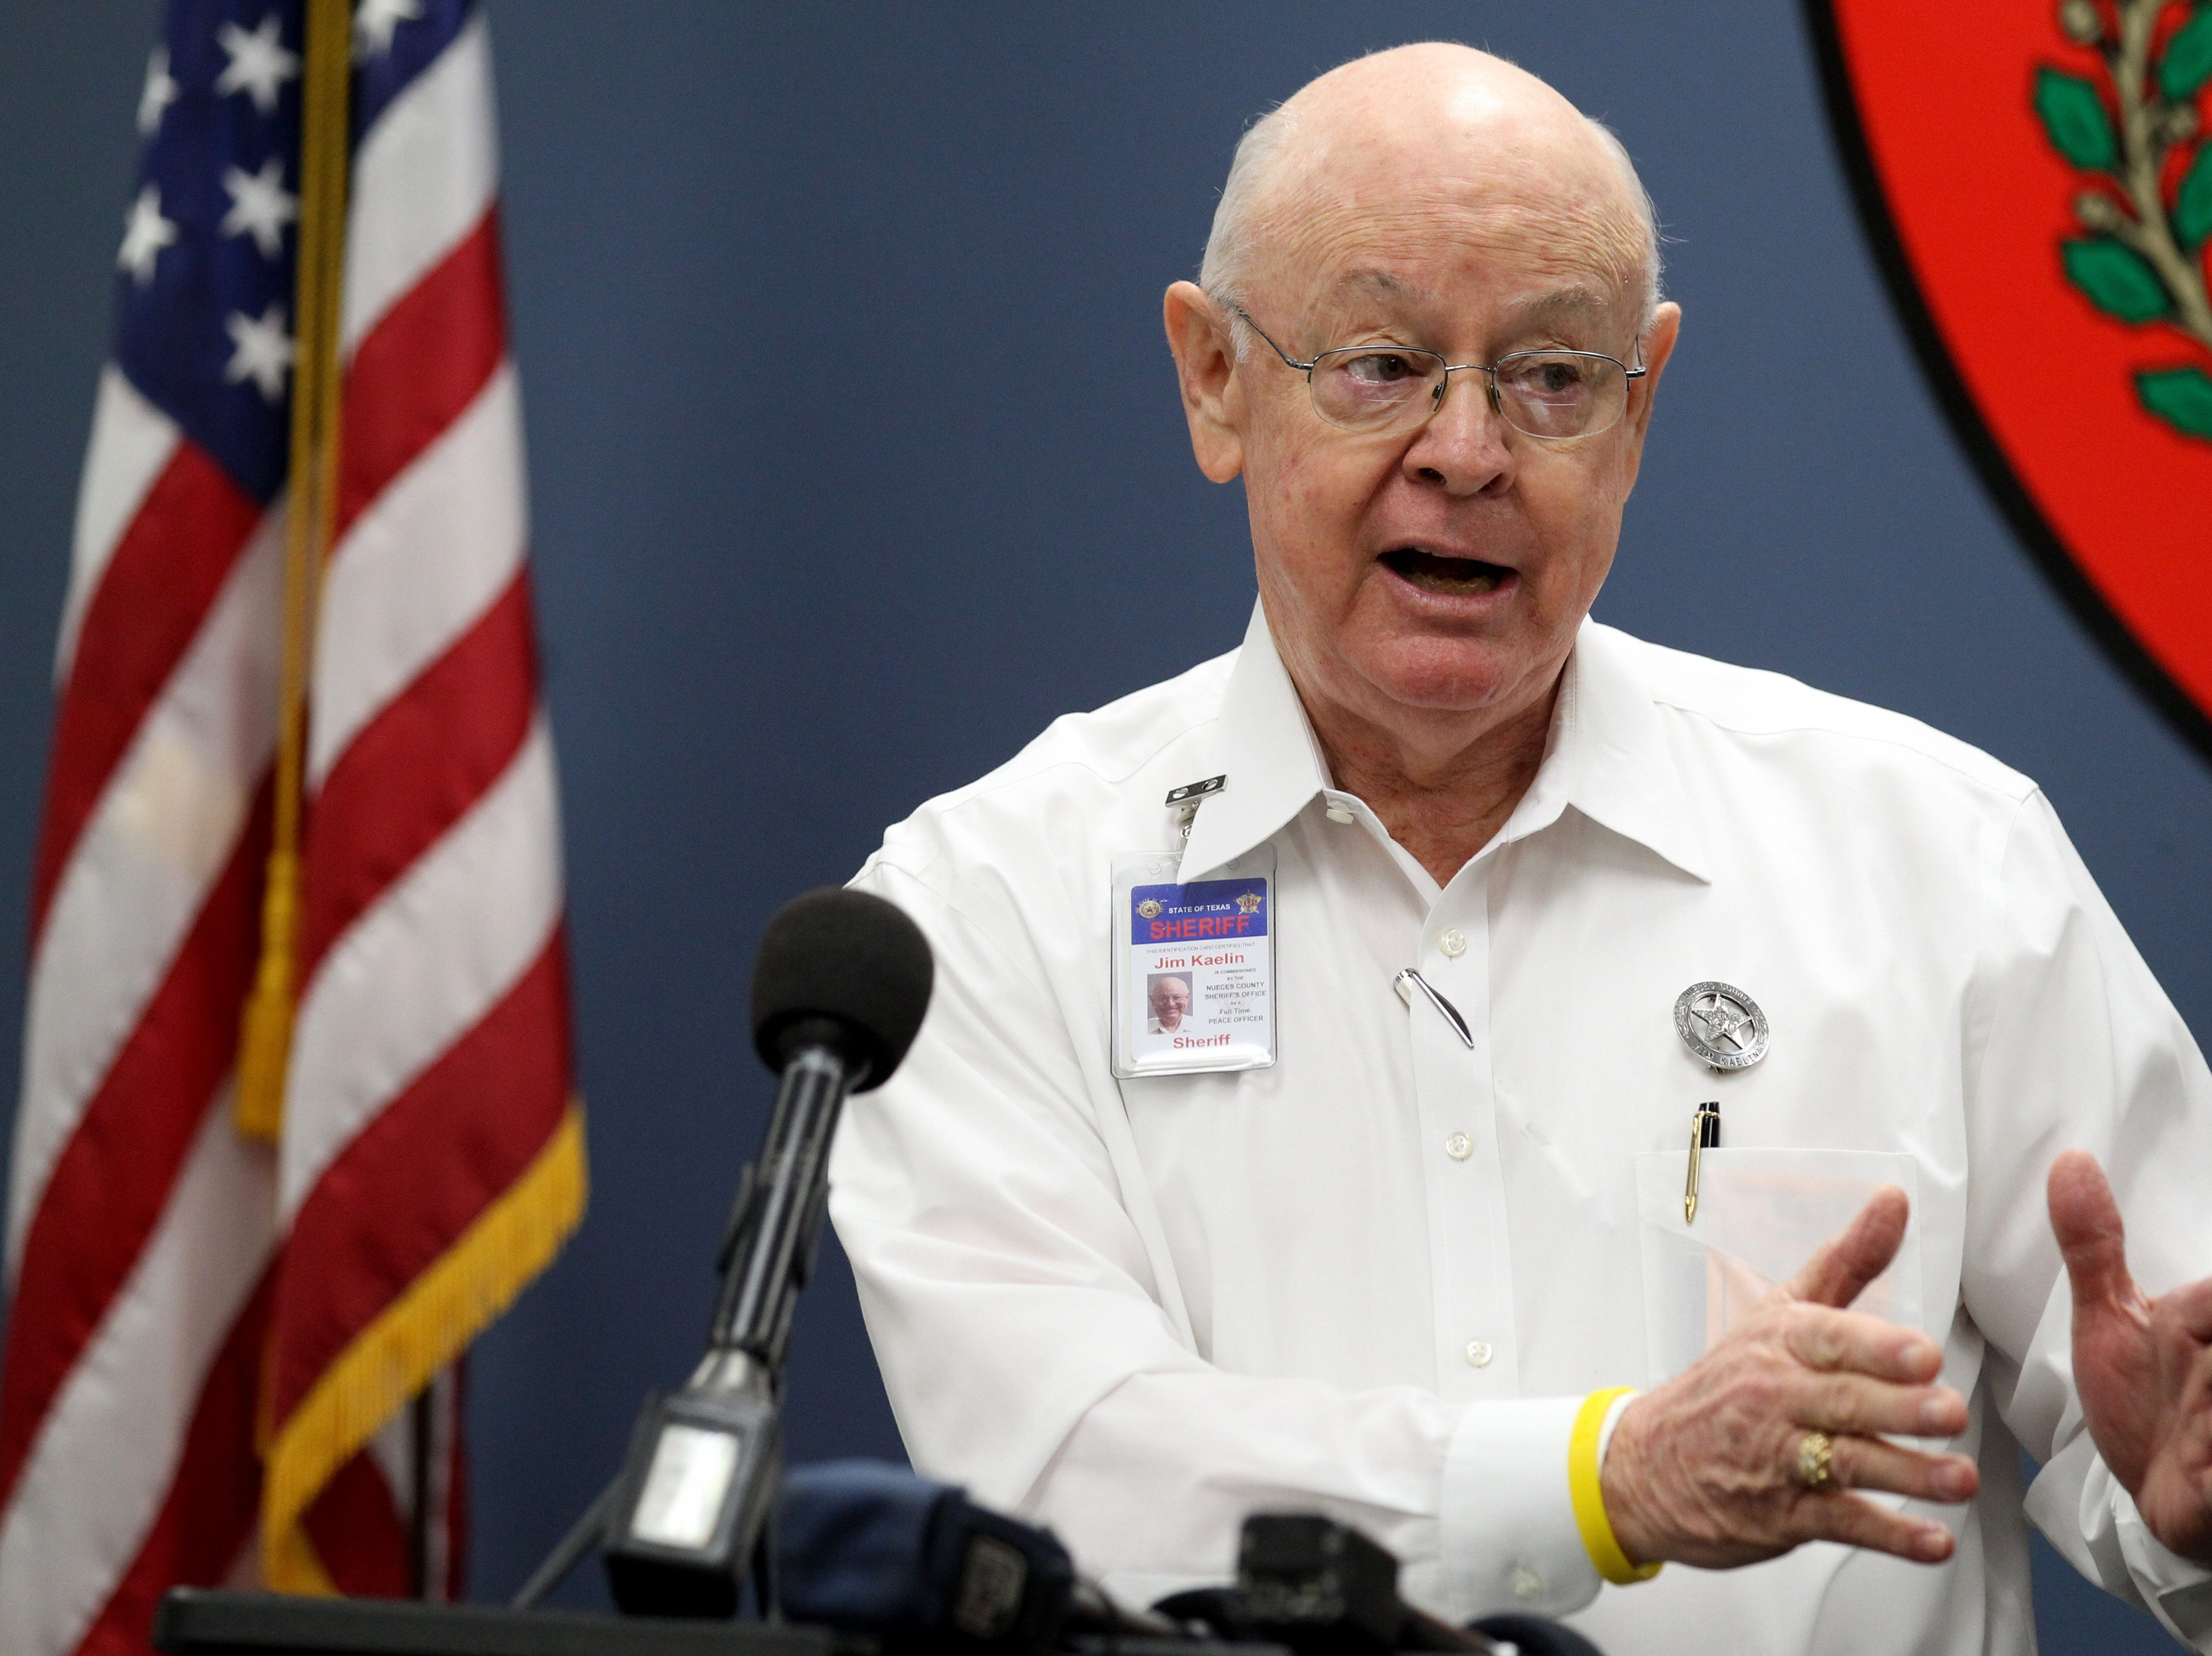 Nueces County Sheriff Jim Kaelin explains to members of the media the steps his staff took Thursday, Nov. 6, 2014 after an incoming inmate claimed he had contact with a person with the Ebola virus at the Nueces County Jail in Corpus Christi.